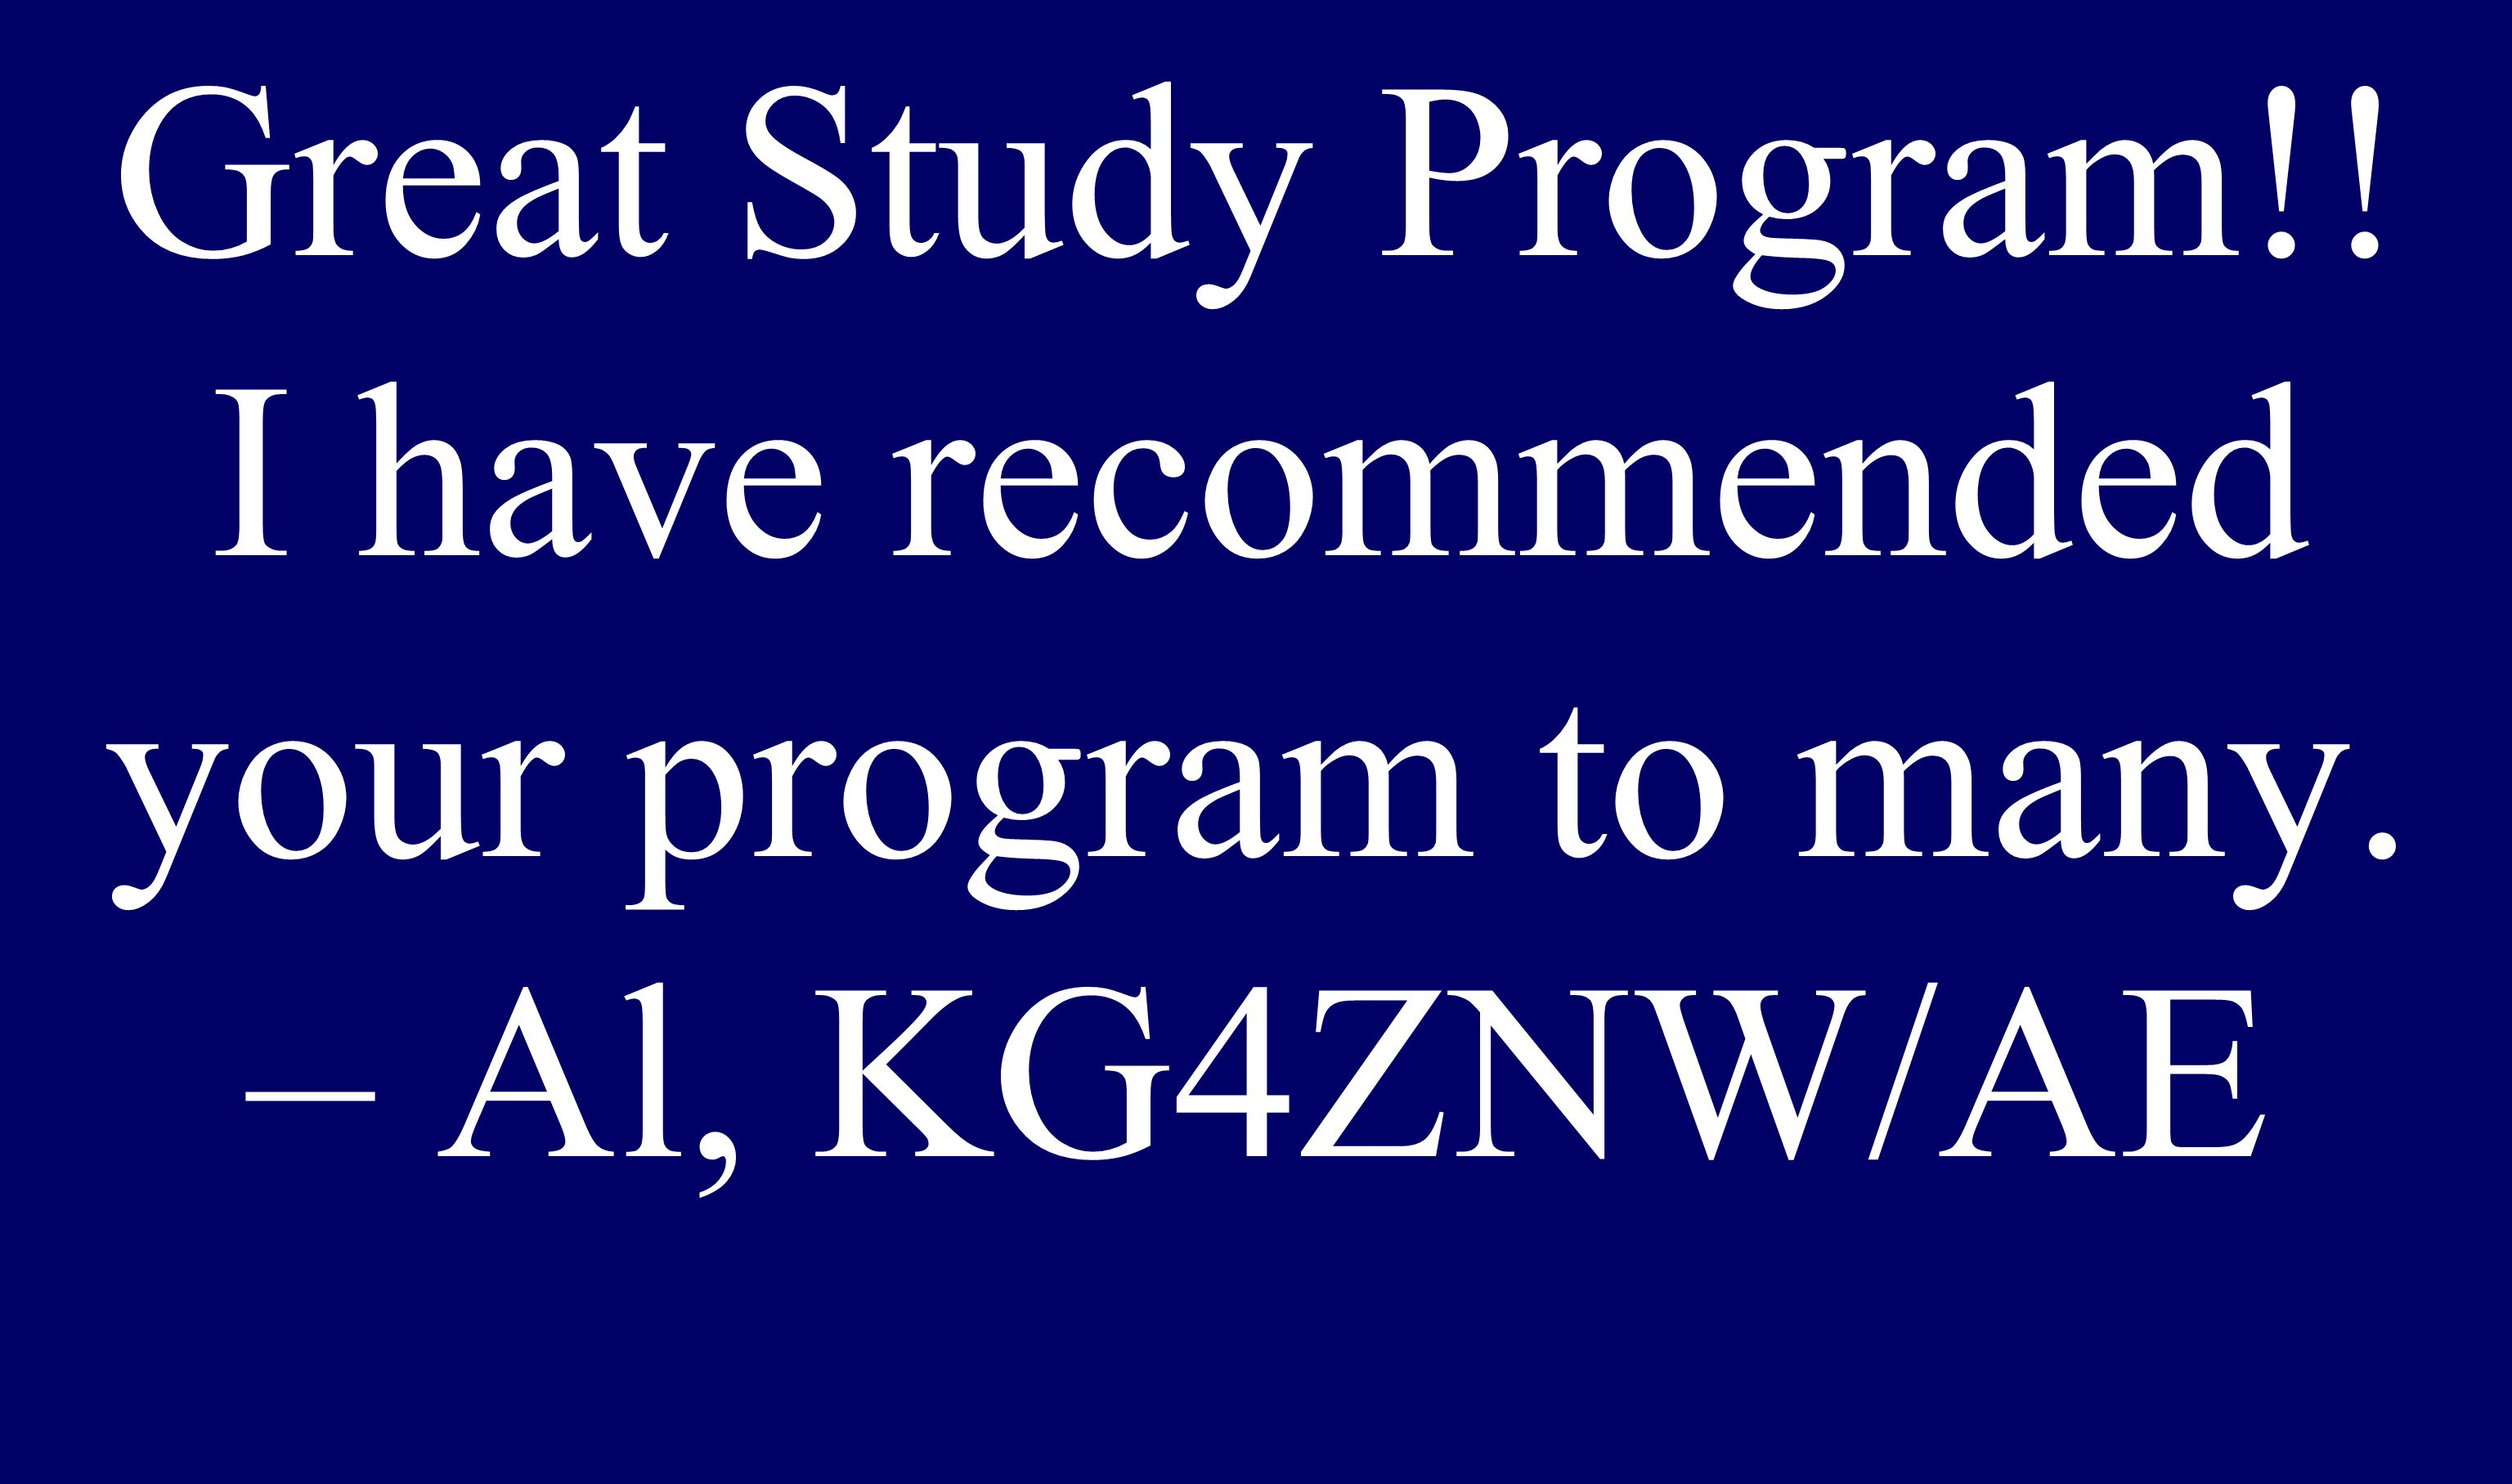 Multiple Test Great Study Program!! I have recommended your program to many. – Al, KG4ZNW/AE